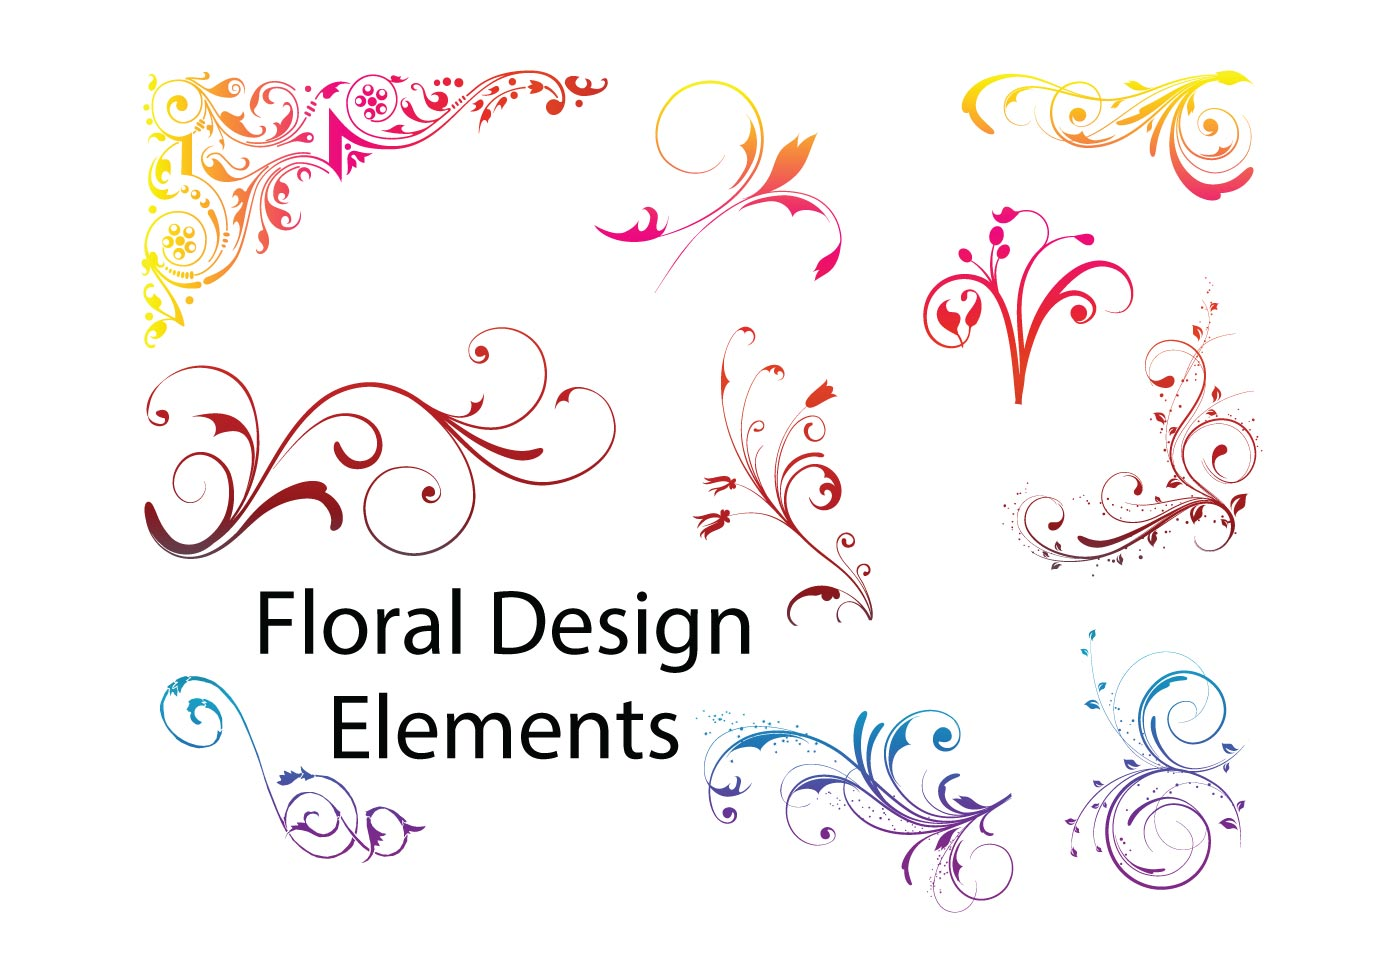 Elements For Design : Floral design elements download free vector art stock